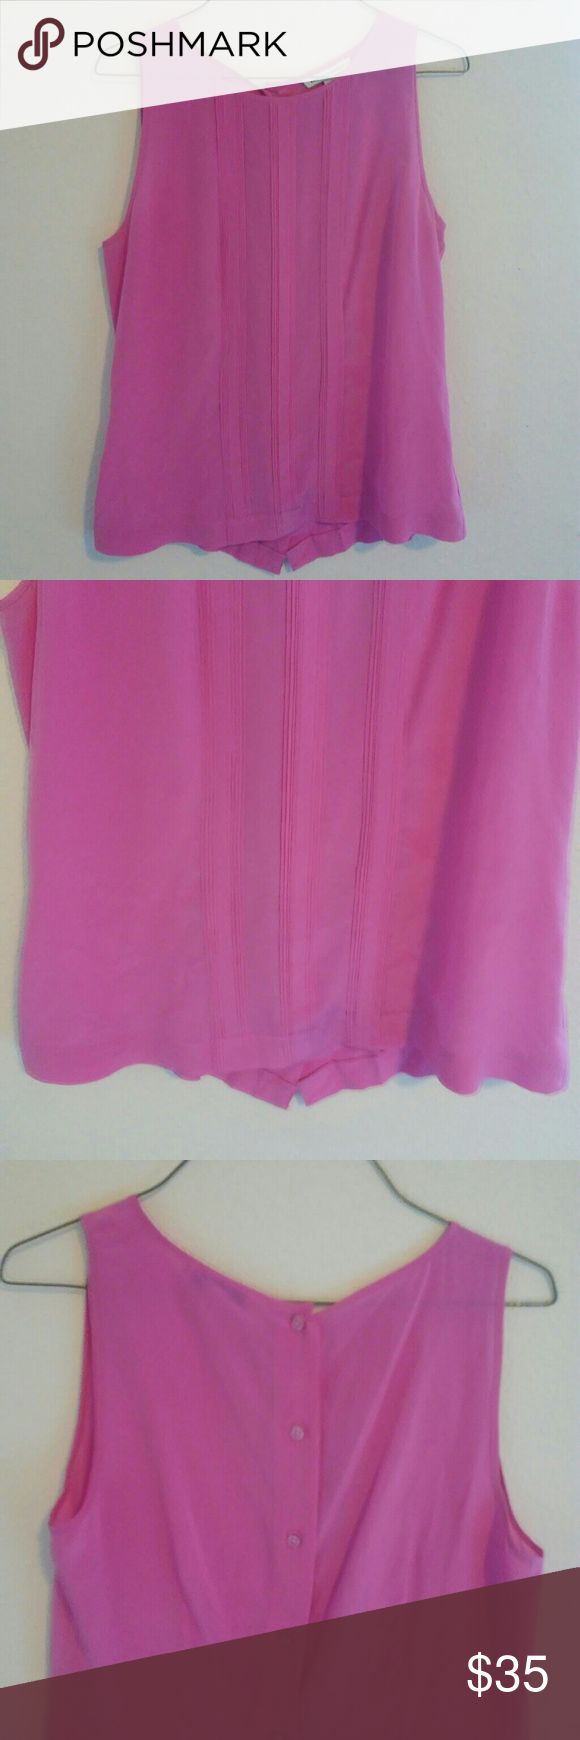 Pink Banana Republic Silk Button Down Add a pop to your outfit with this super cute button down! Silk material in excellent preowned condition! Banana Republic Tops Button Down Shirts